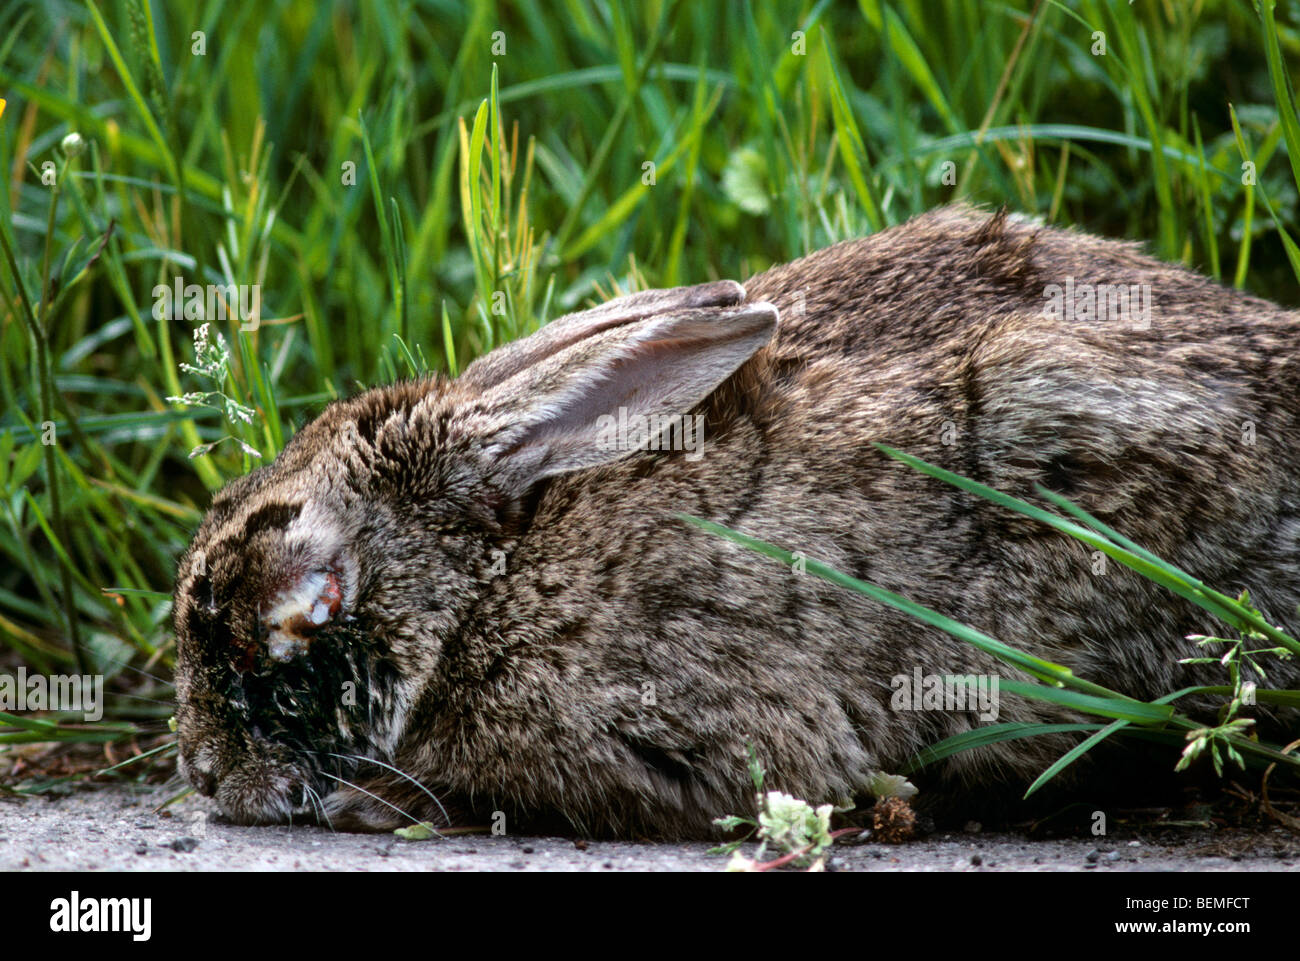 Sick rabbit (Oryctolagus cuniculus) infected with the Myxomatosis disease showing swelling around the eyes - Stock Image